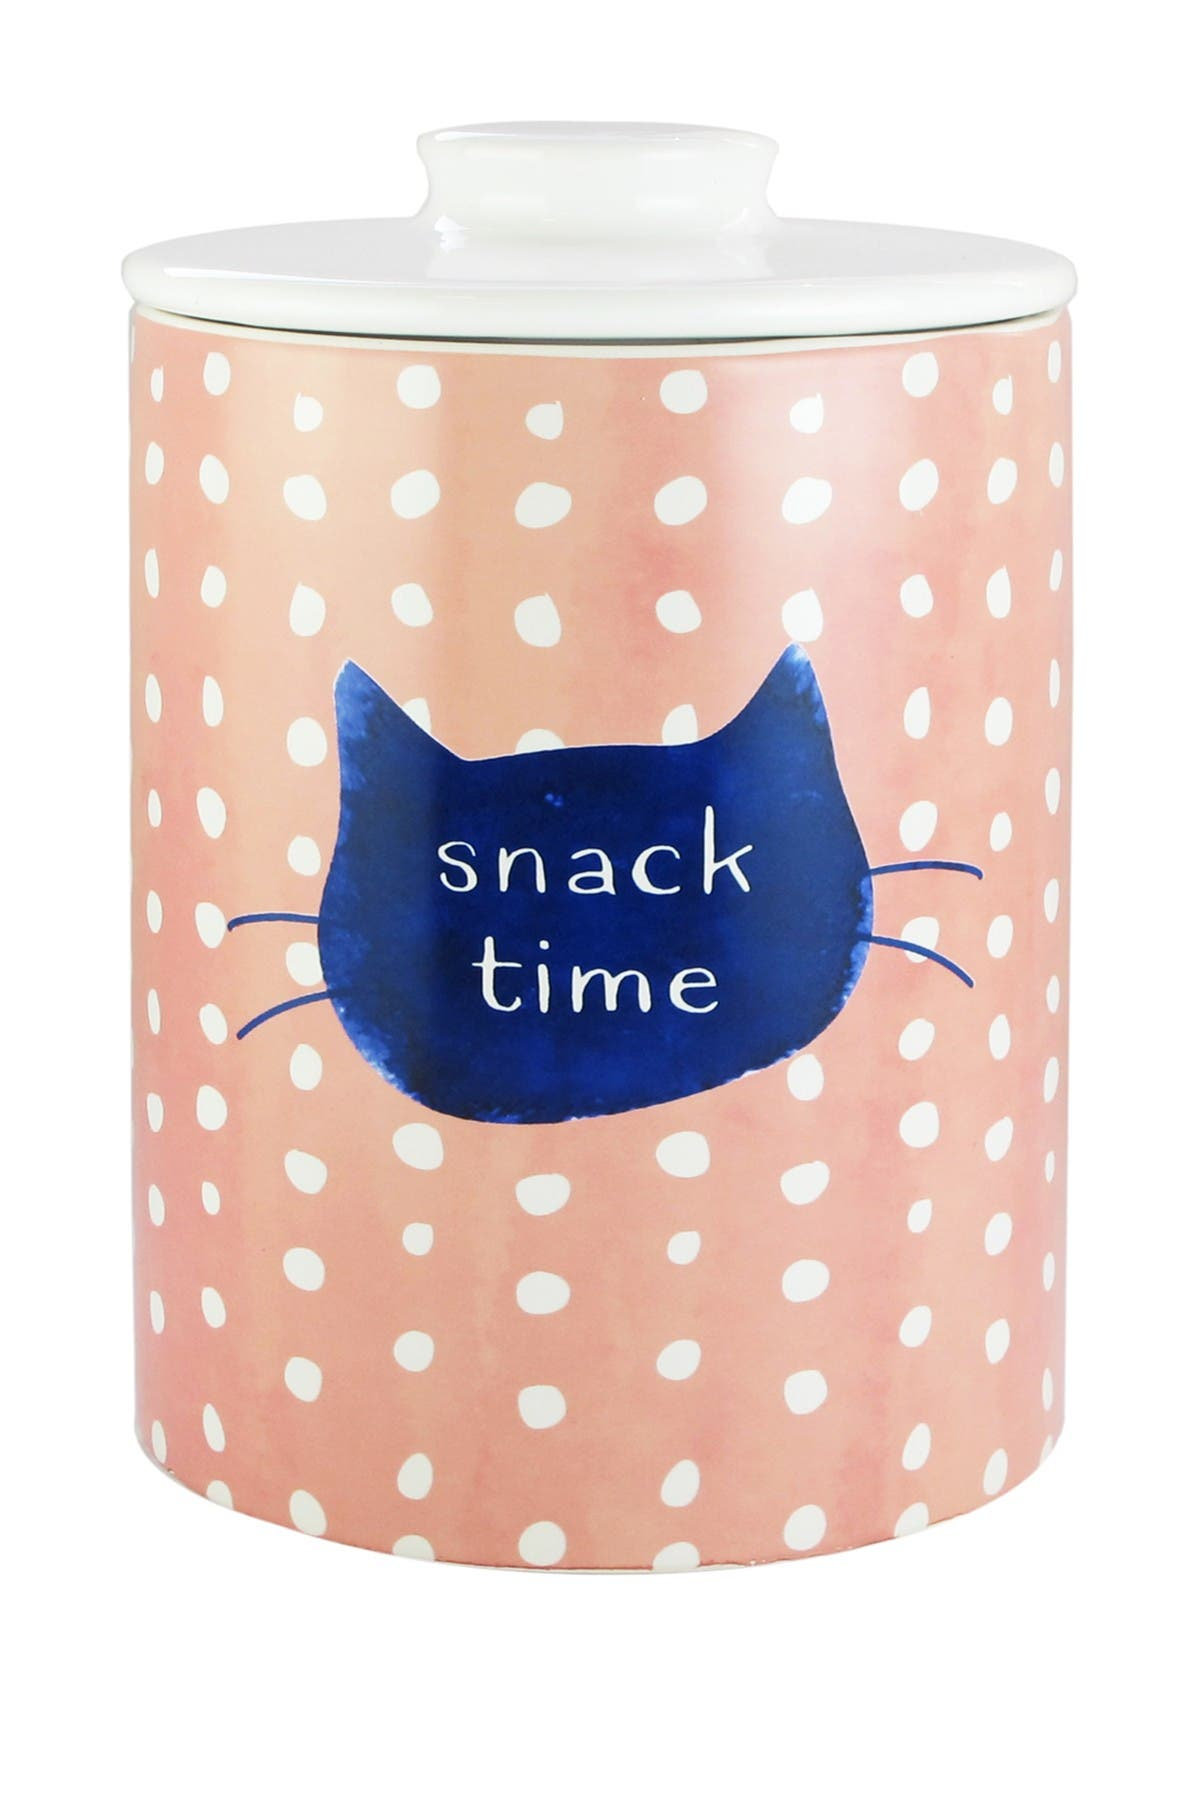 Image of Jay Import Snack Time Ceramic Canister - Pink